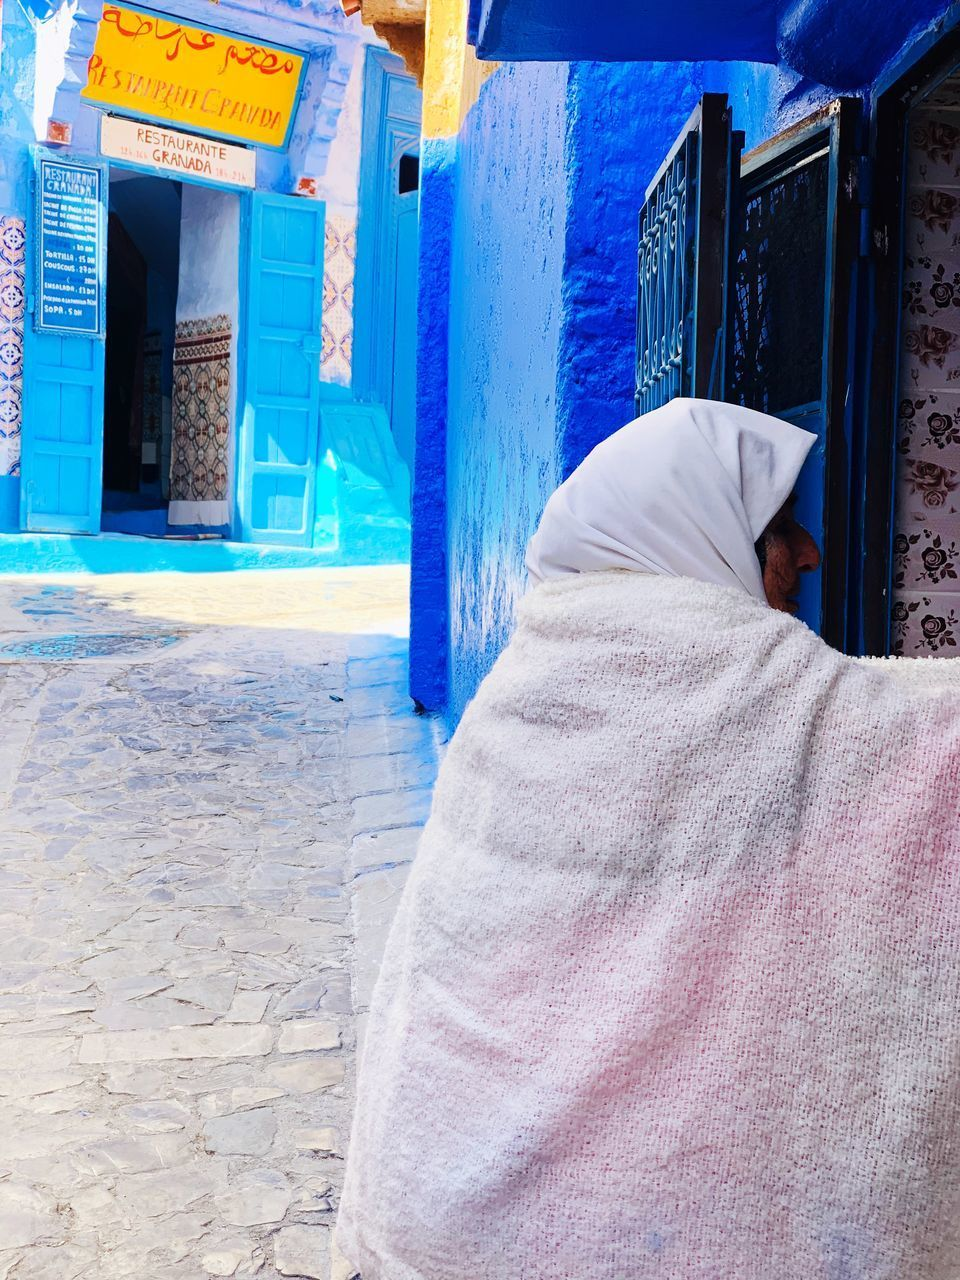 architecture, built structure, building exterior, building, day, real people, blue, door, entrance, sunlight, people, rear view, clothing, outdoors, textile, house, window, city